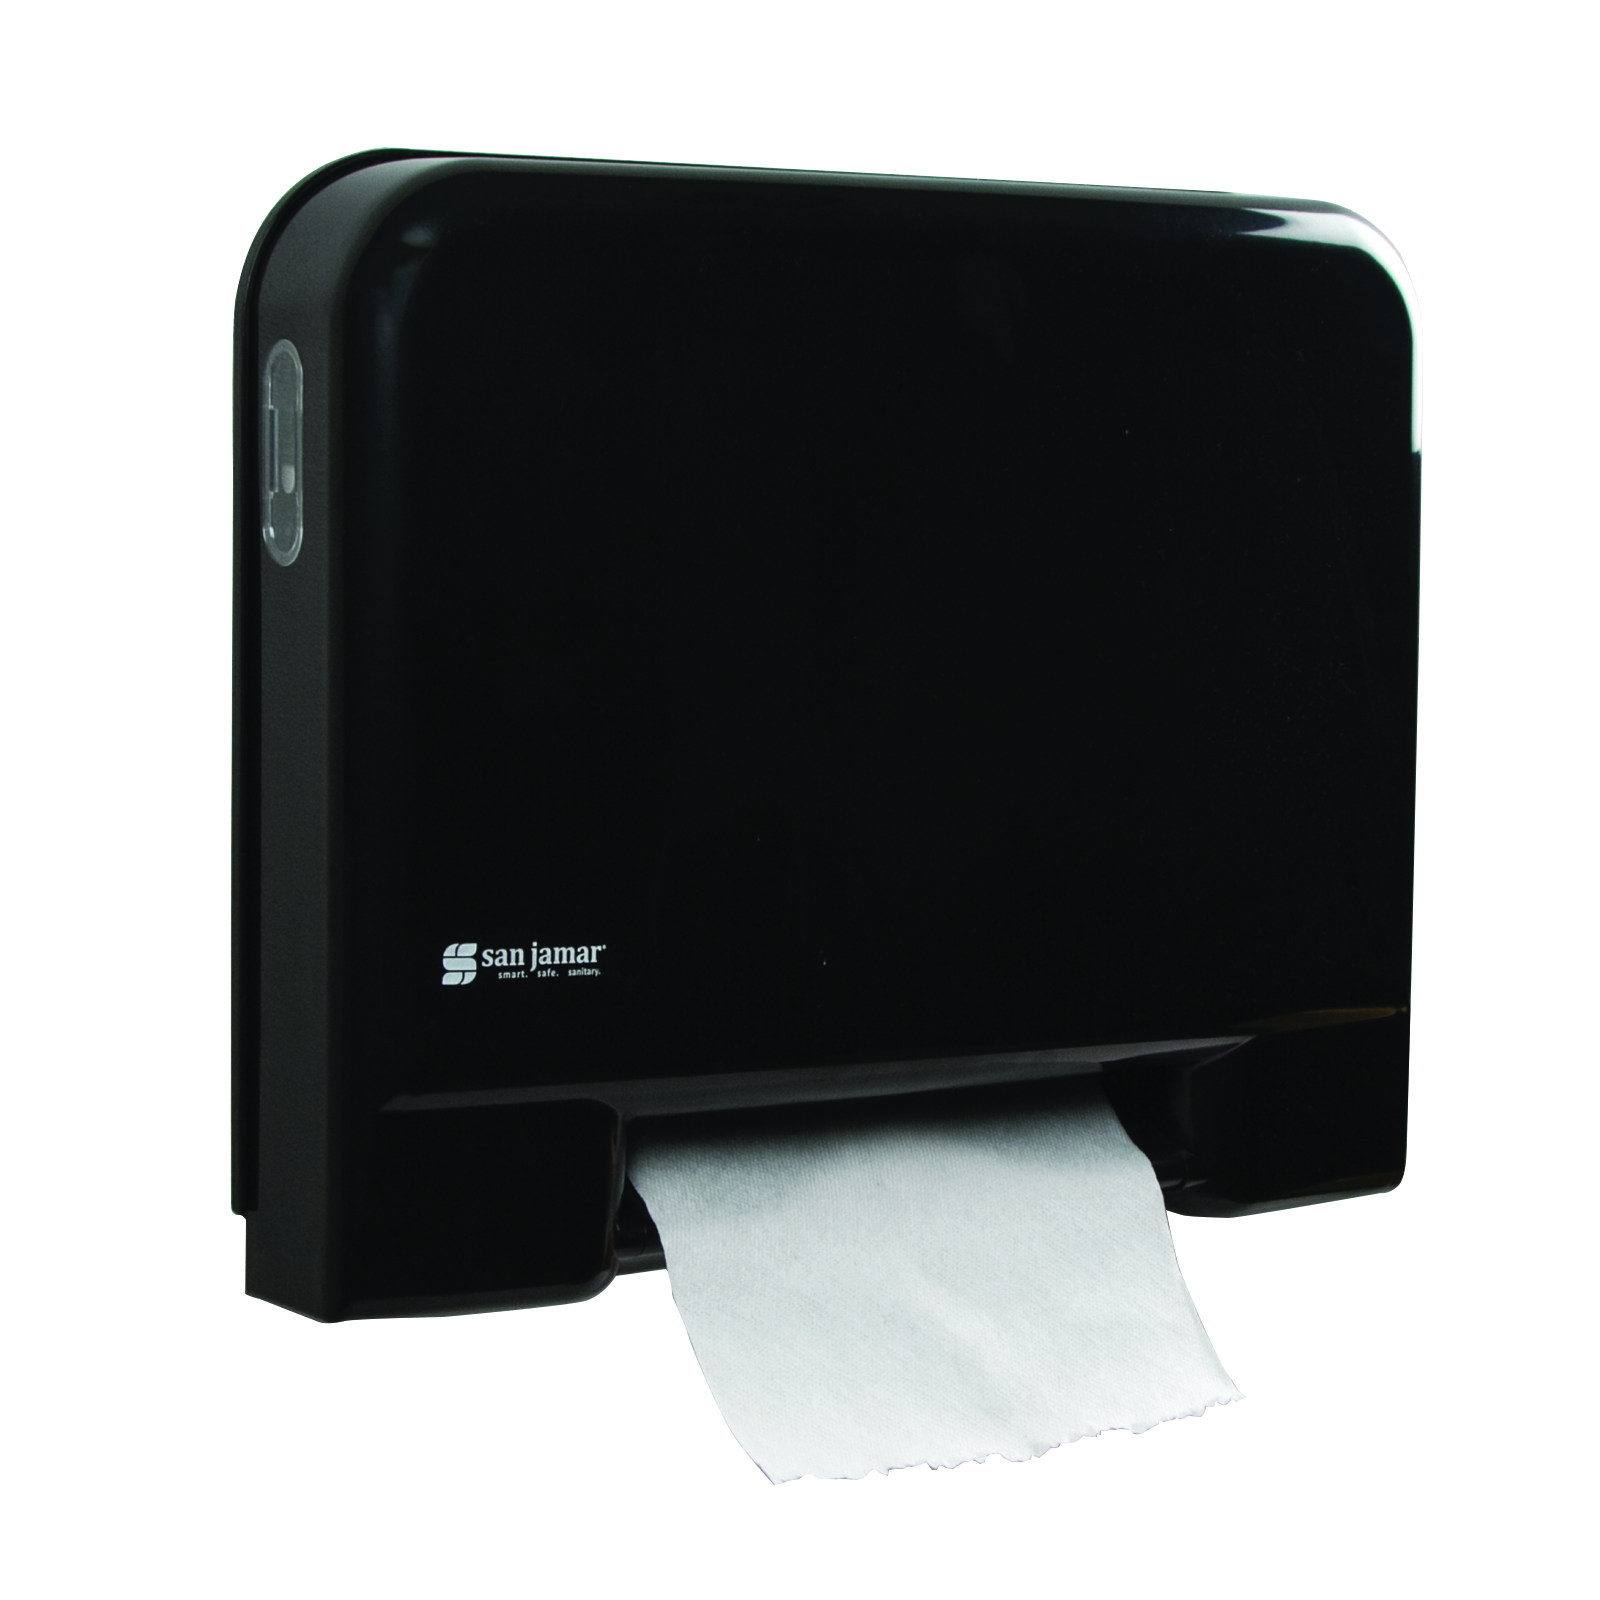 San Jamar T8006BKADA paper towel dispenser